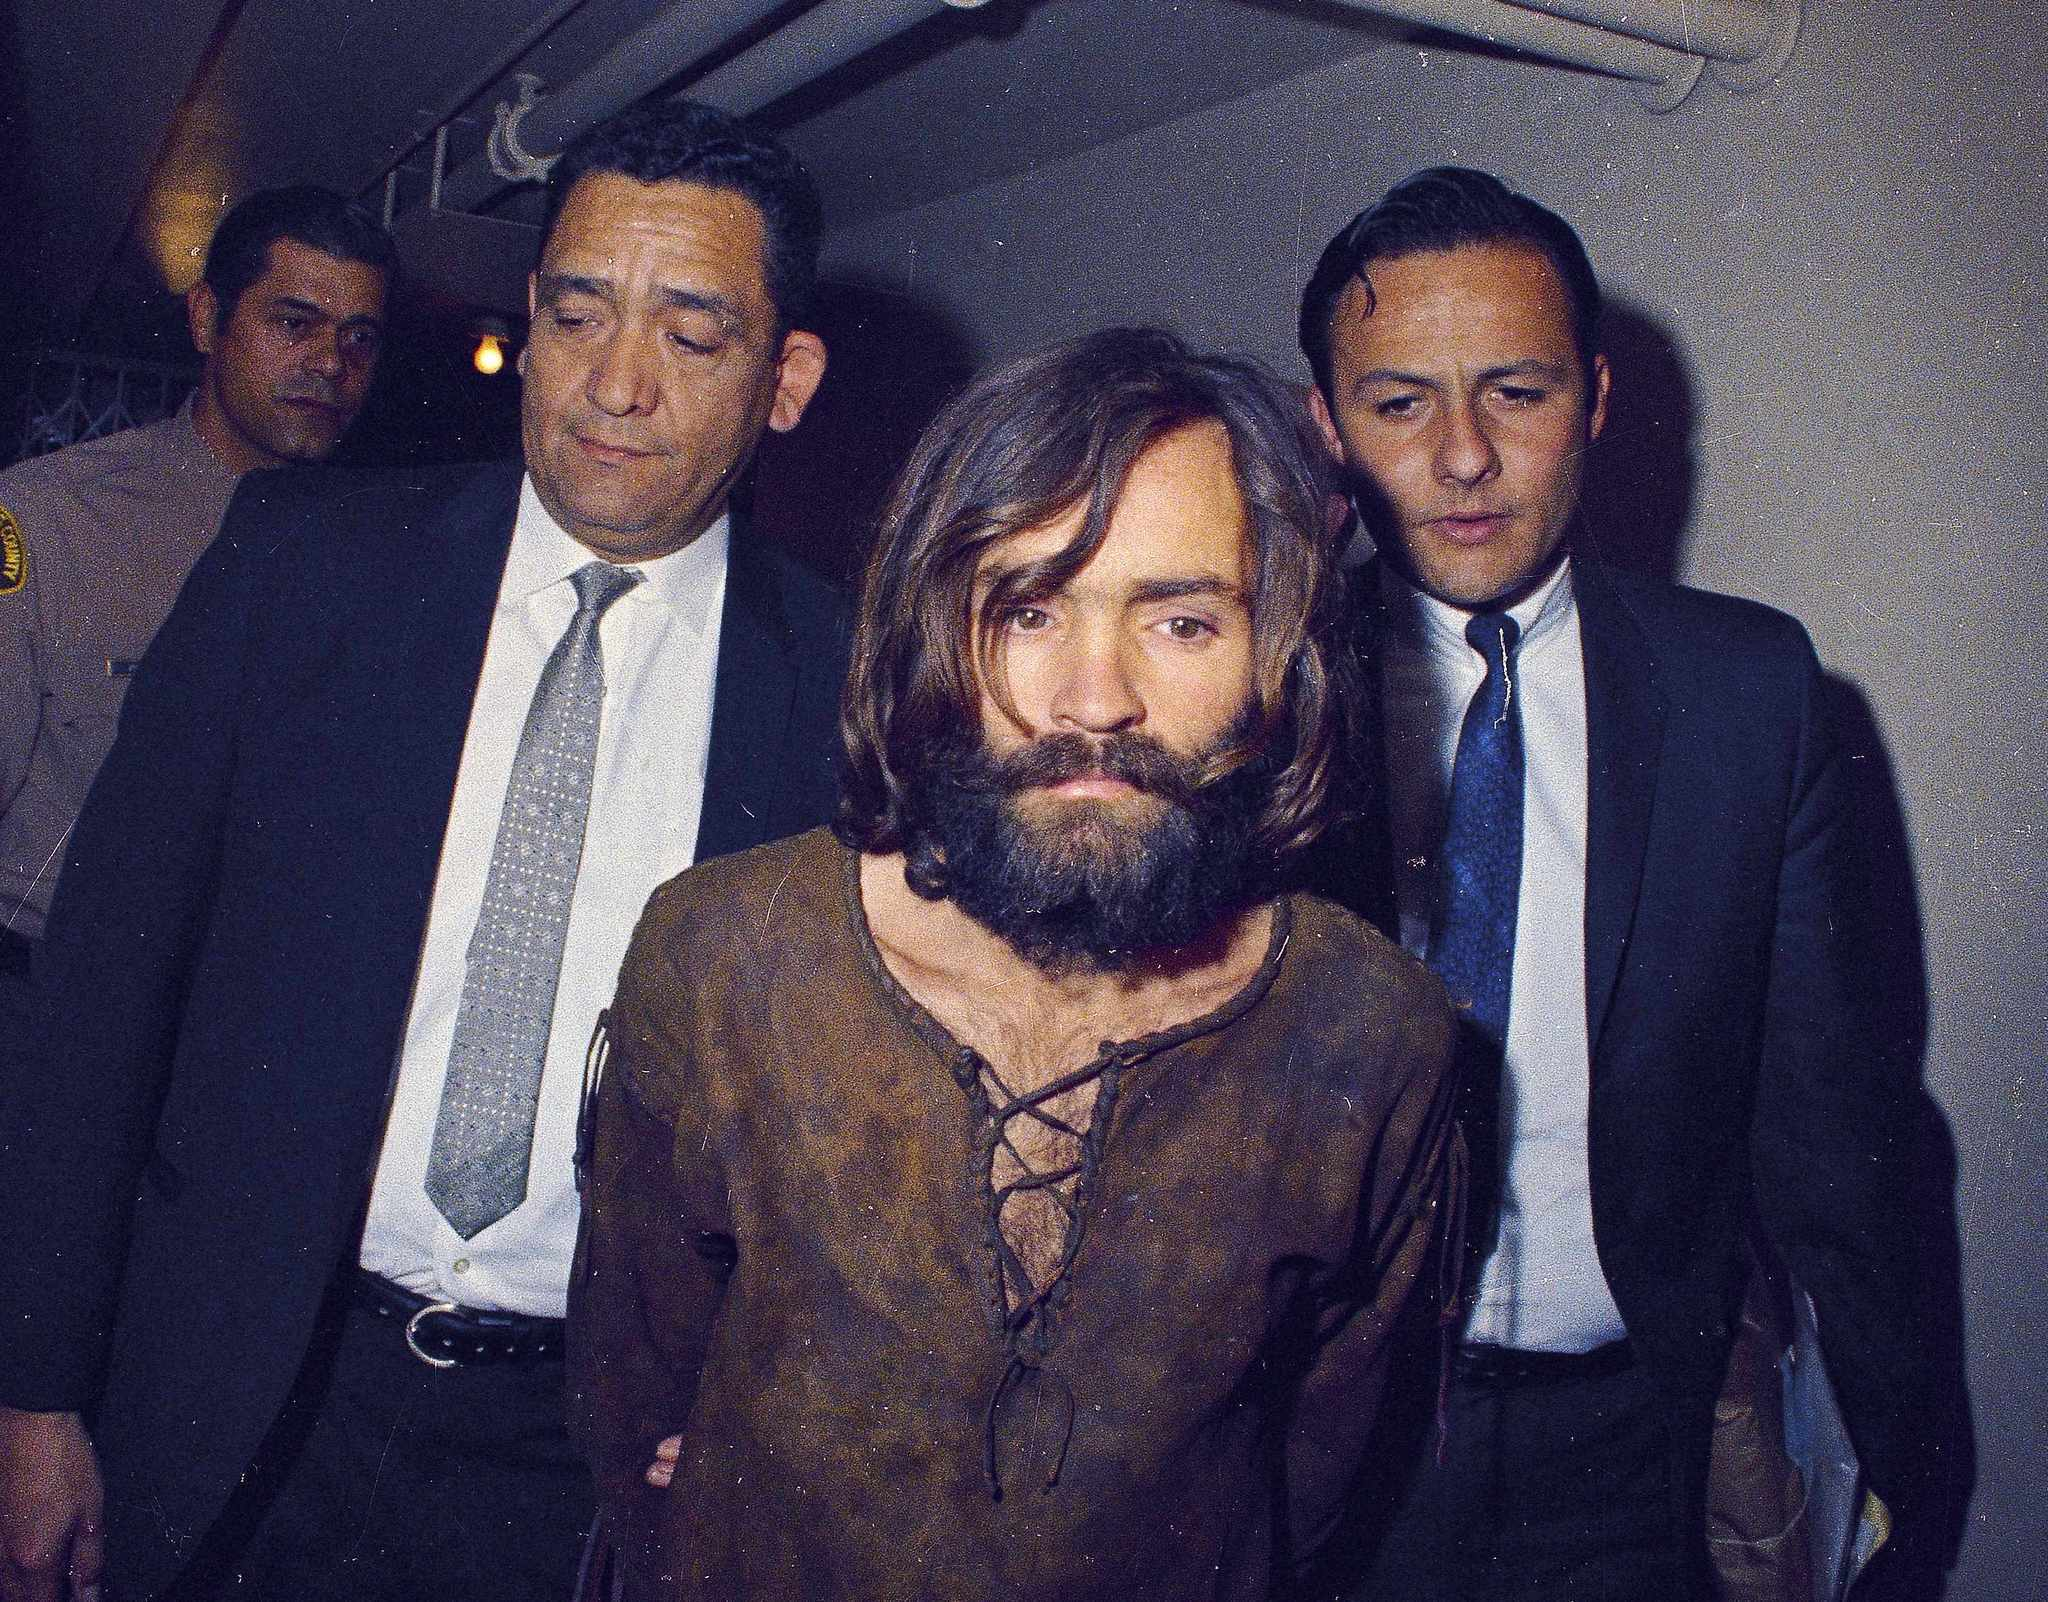 Charles Manson 'family' timeline: 1967 to the present